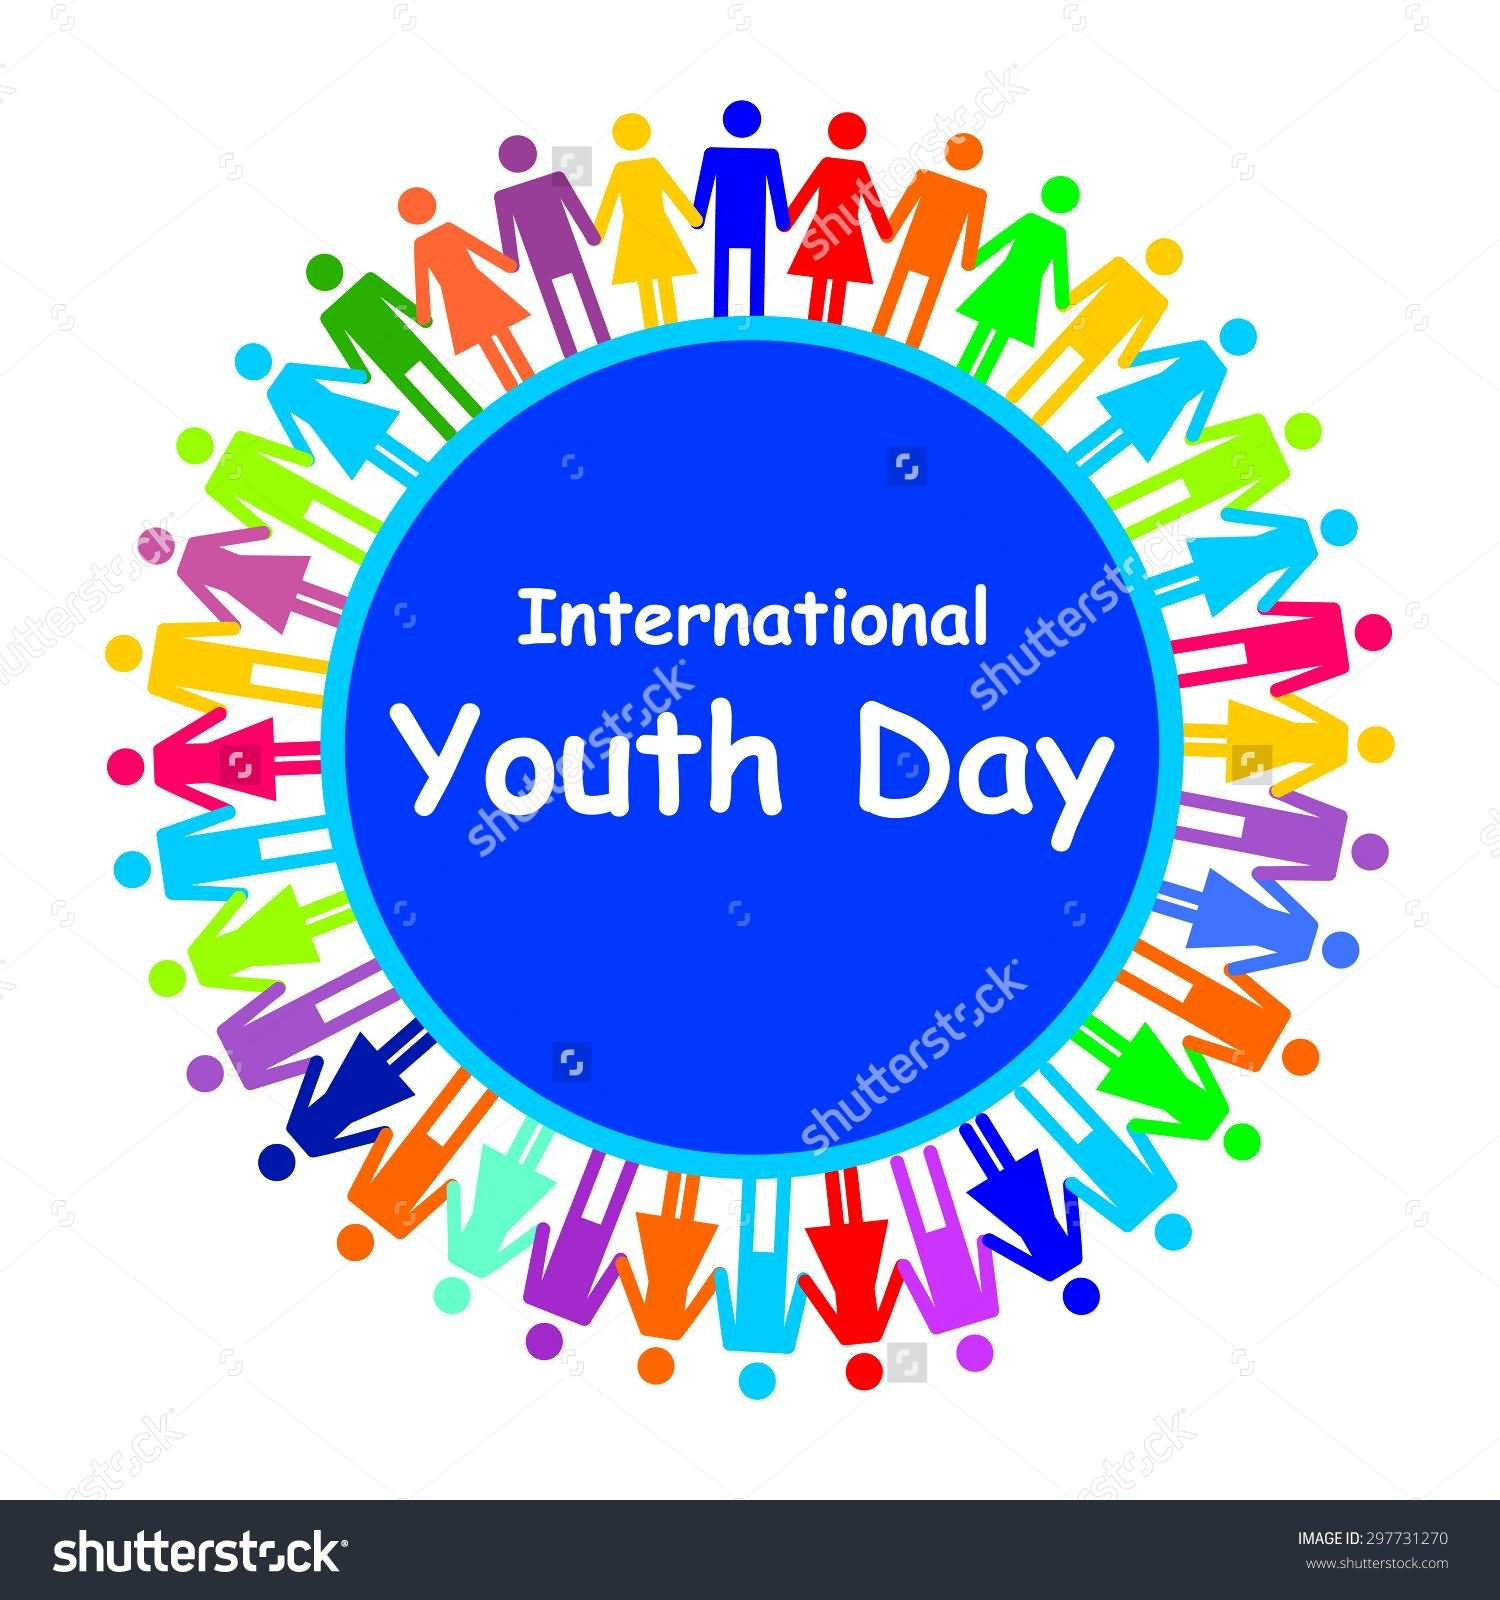 Youth day clipart 5 » Clipart Portal.